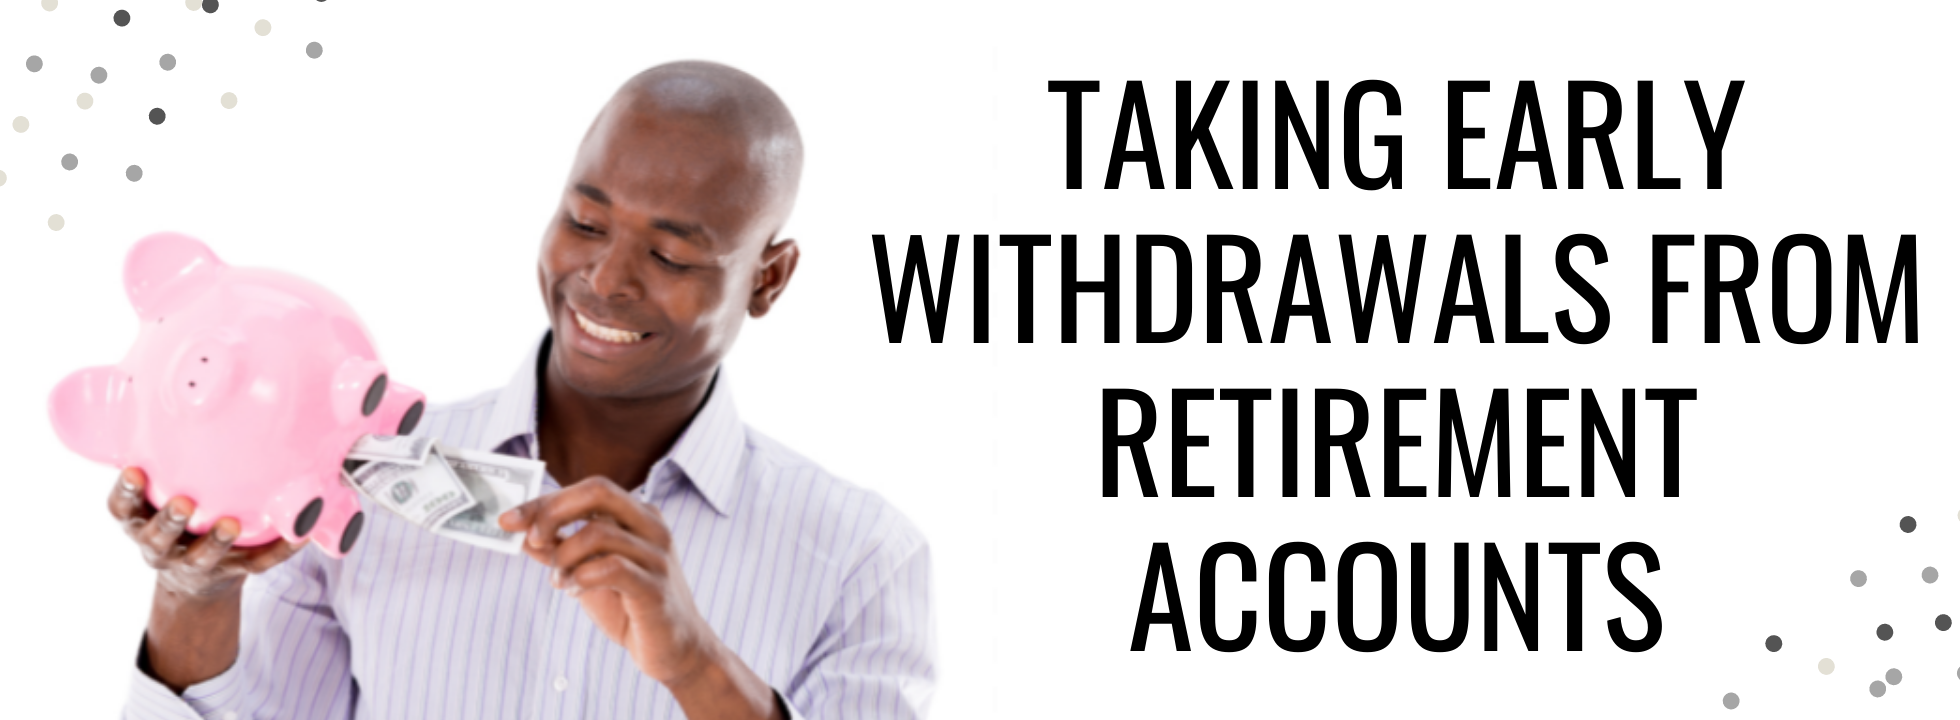 Taking Early Withdrawals From Retirement Accounts